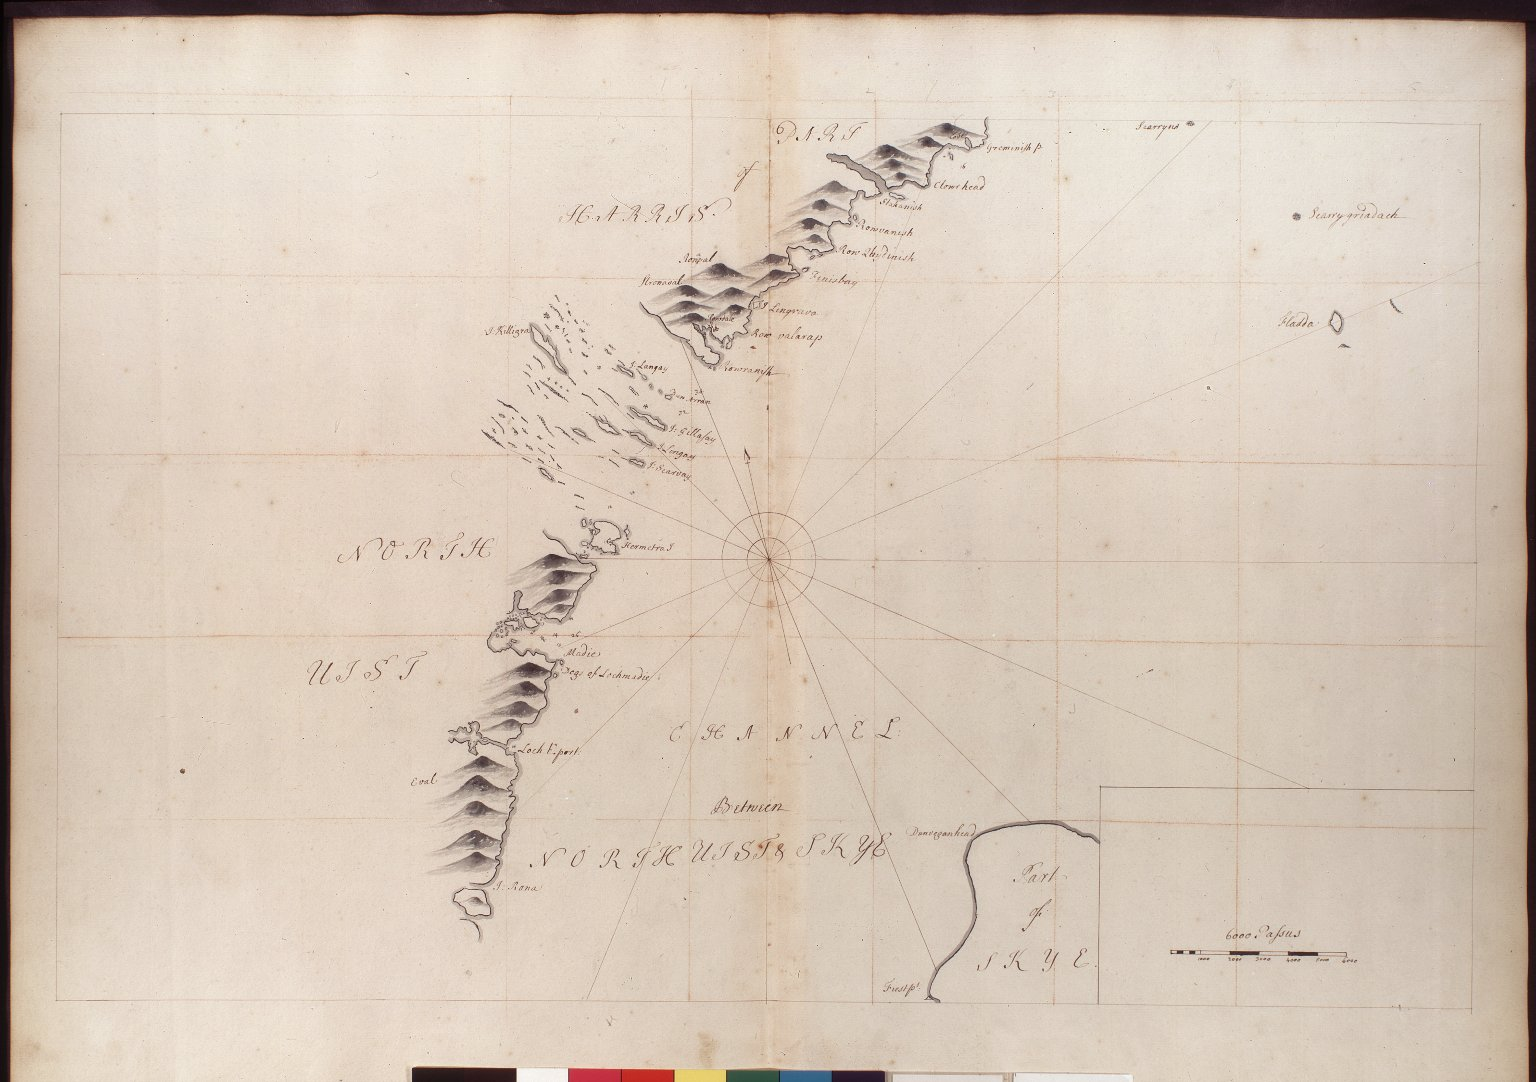 [Part of Harris & the Channel between North Uist & the Island of Skye. Mss Adair] [1 of 1]